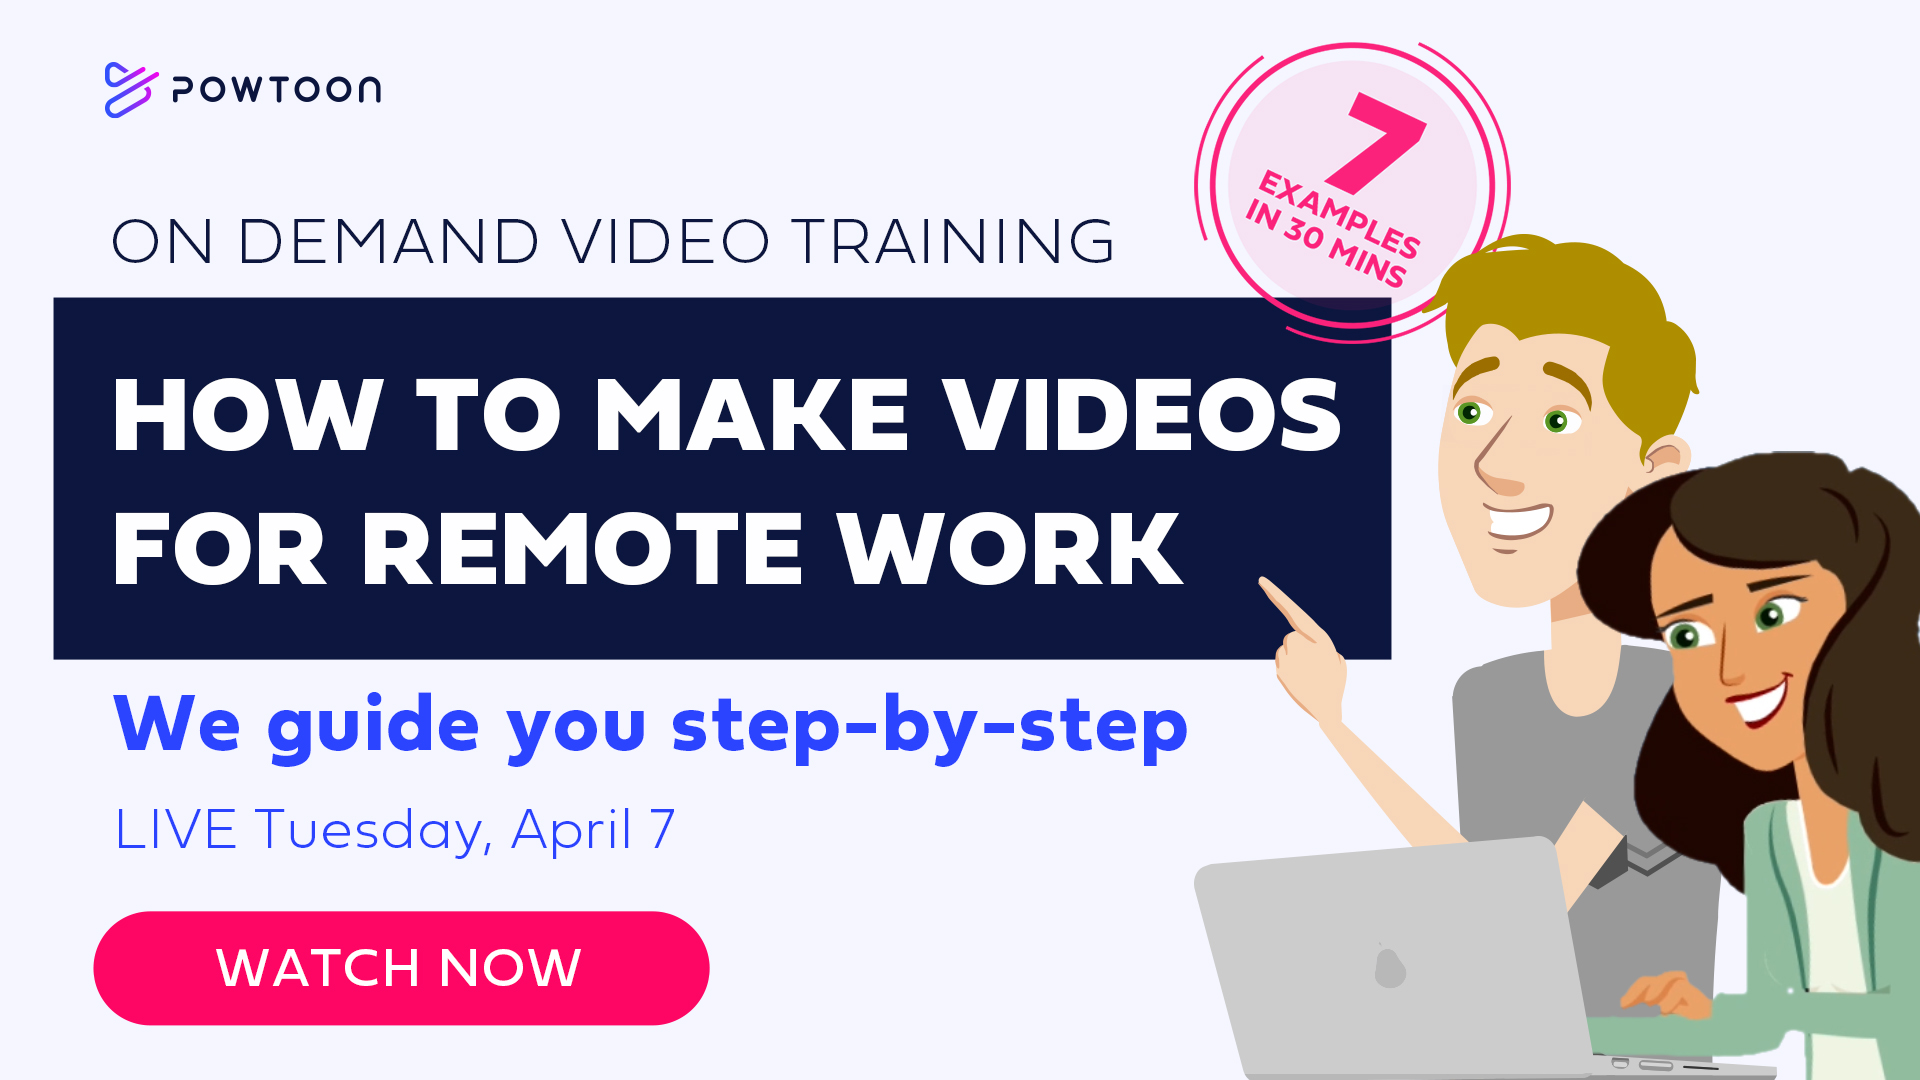 on demand video training 7 videos for remote work